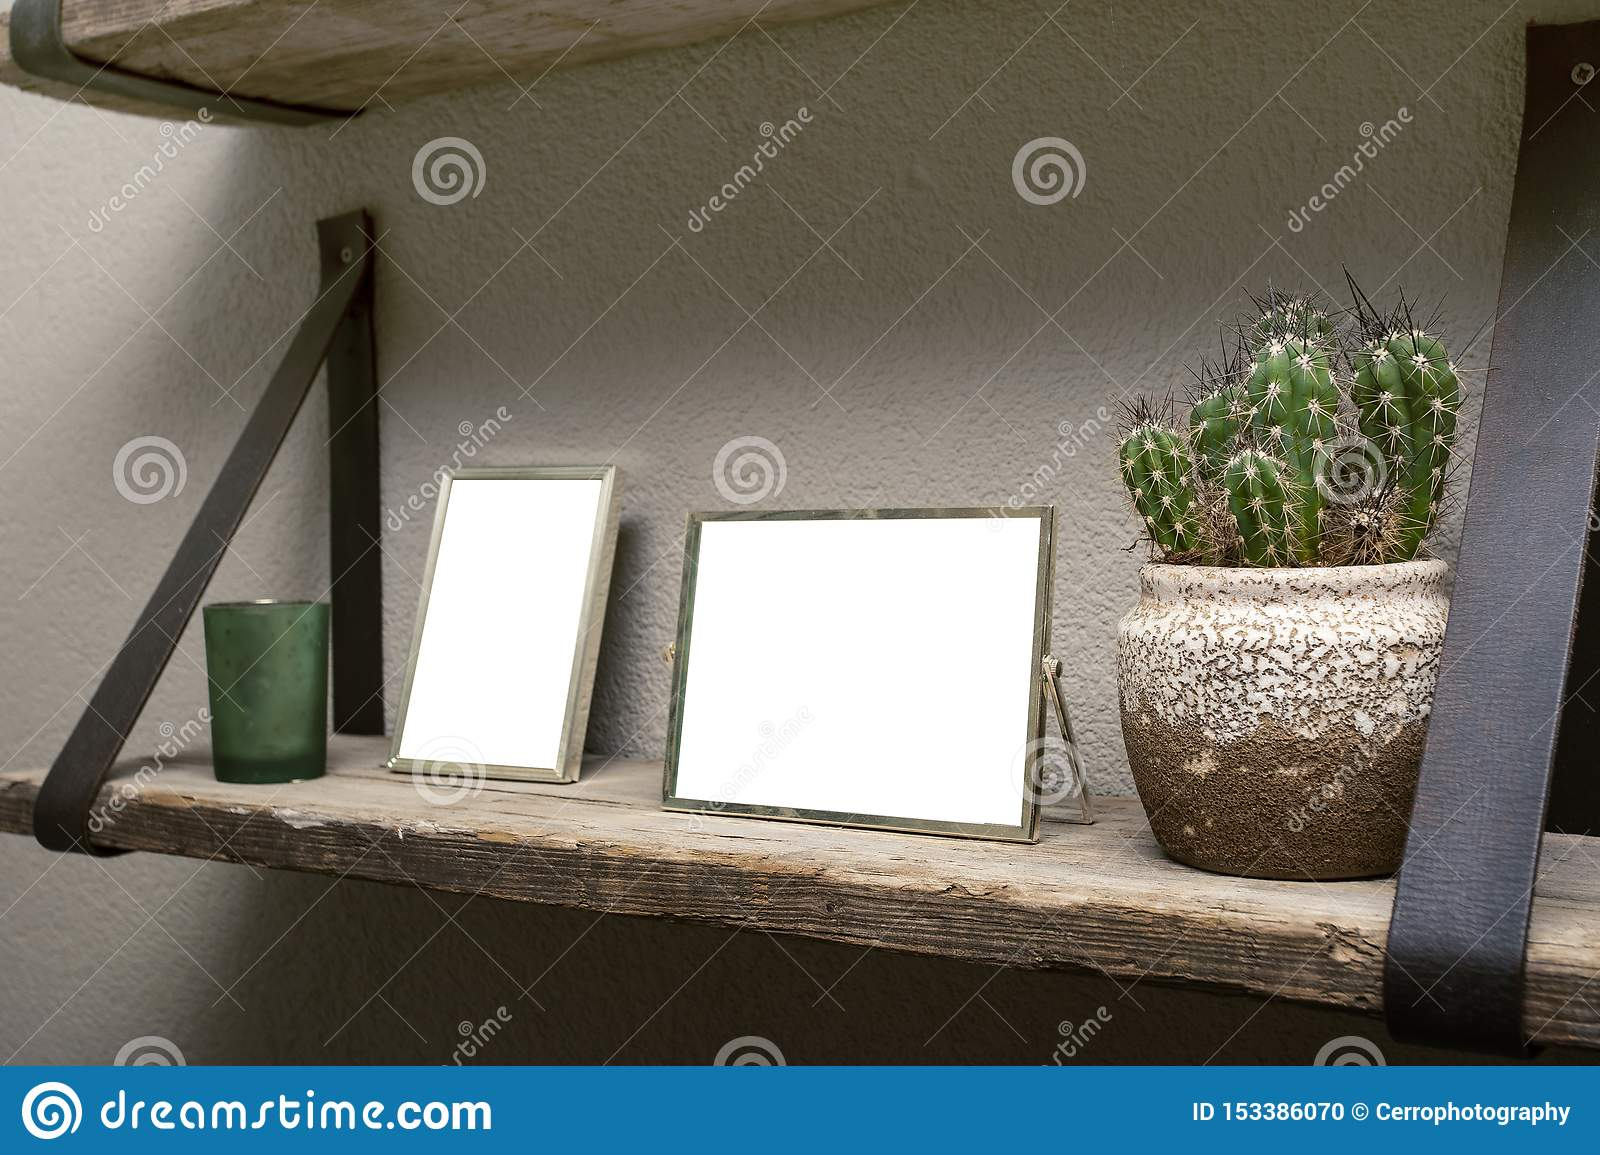 Two blank picture frames and cactus decoration on wooden shelf, industrial retro interior design